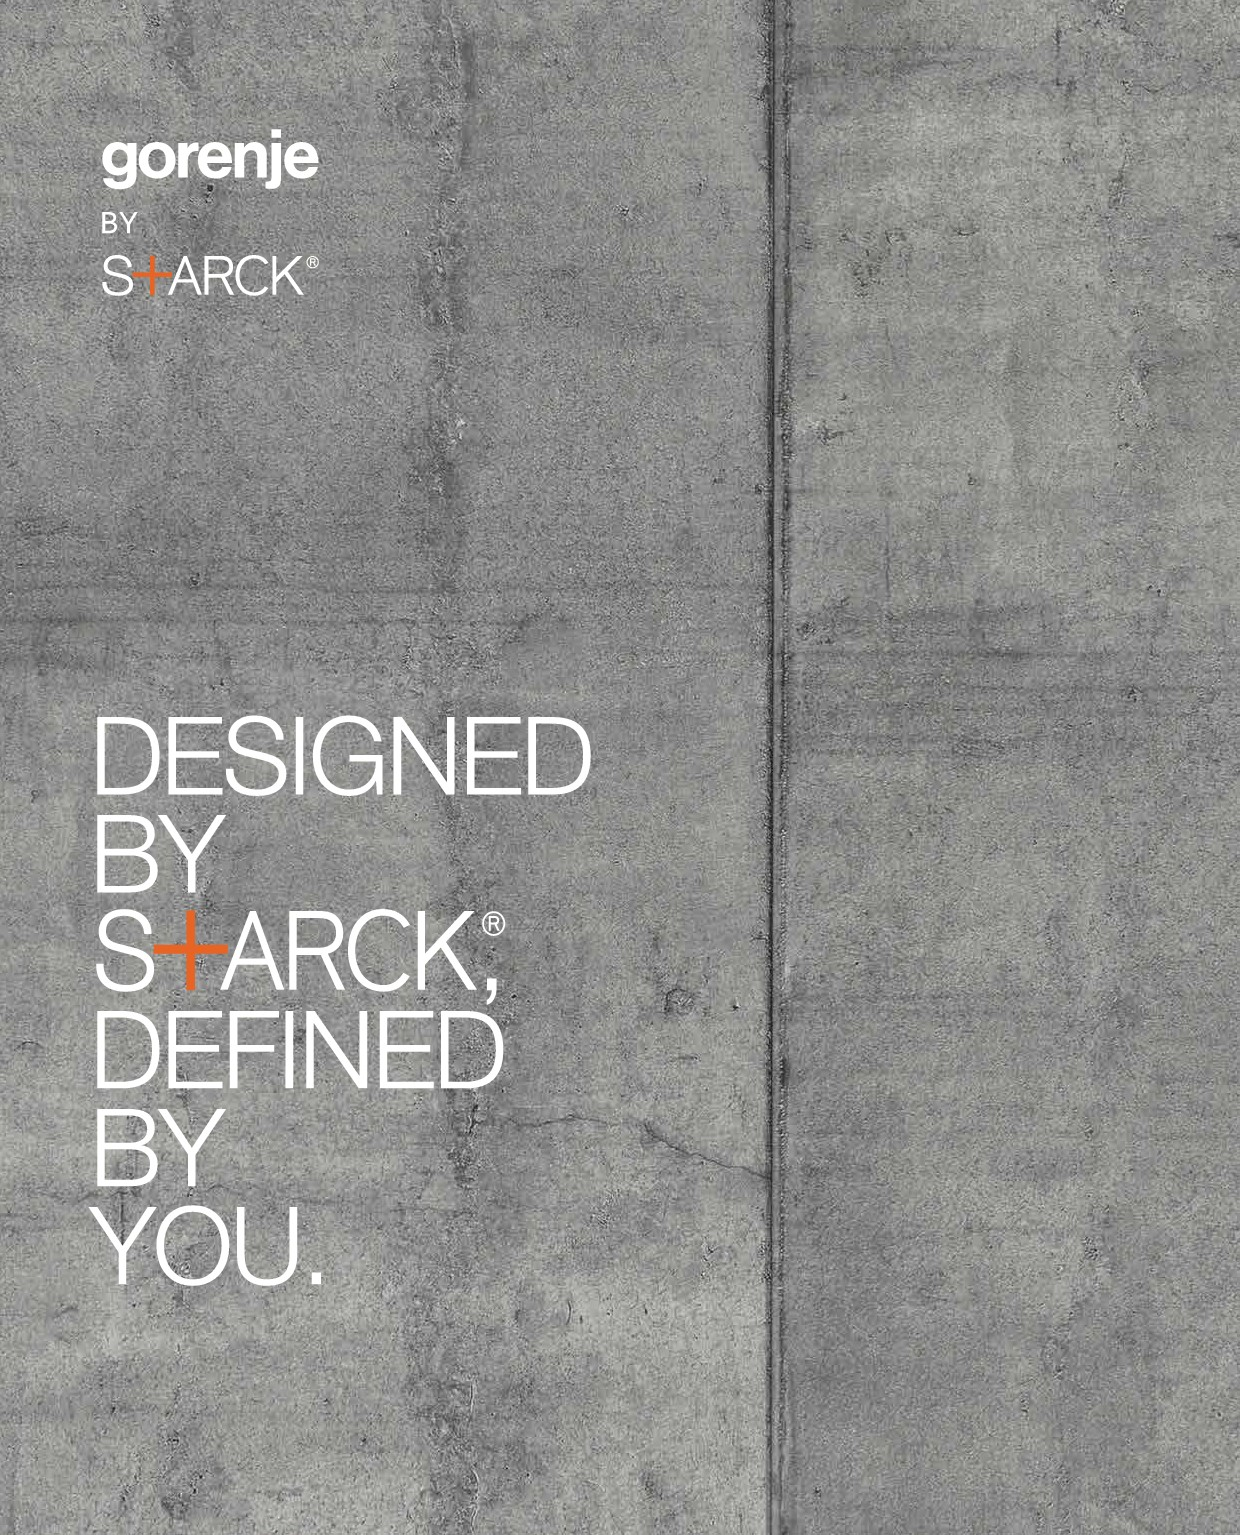 Gorenje Products Catalogue